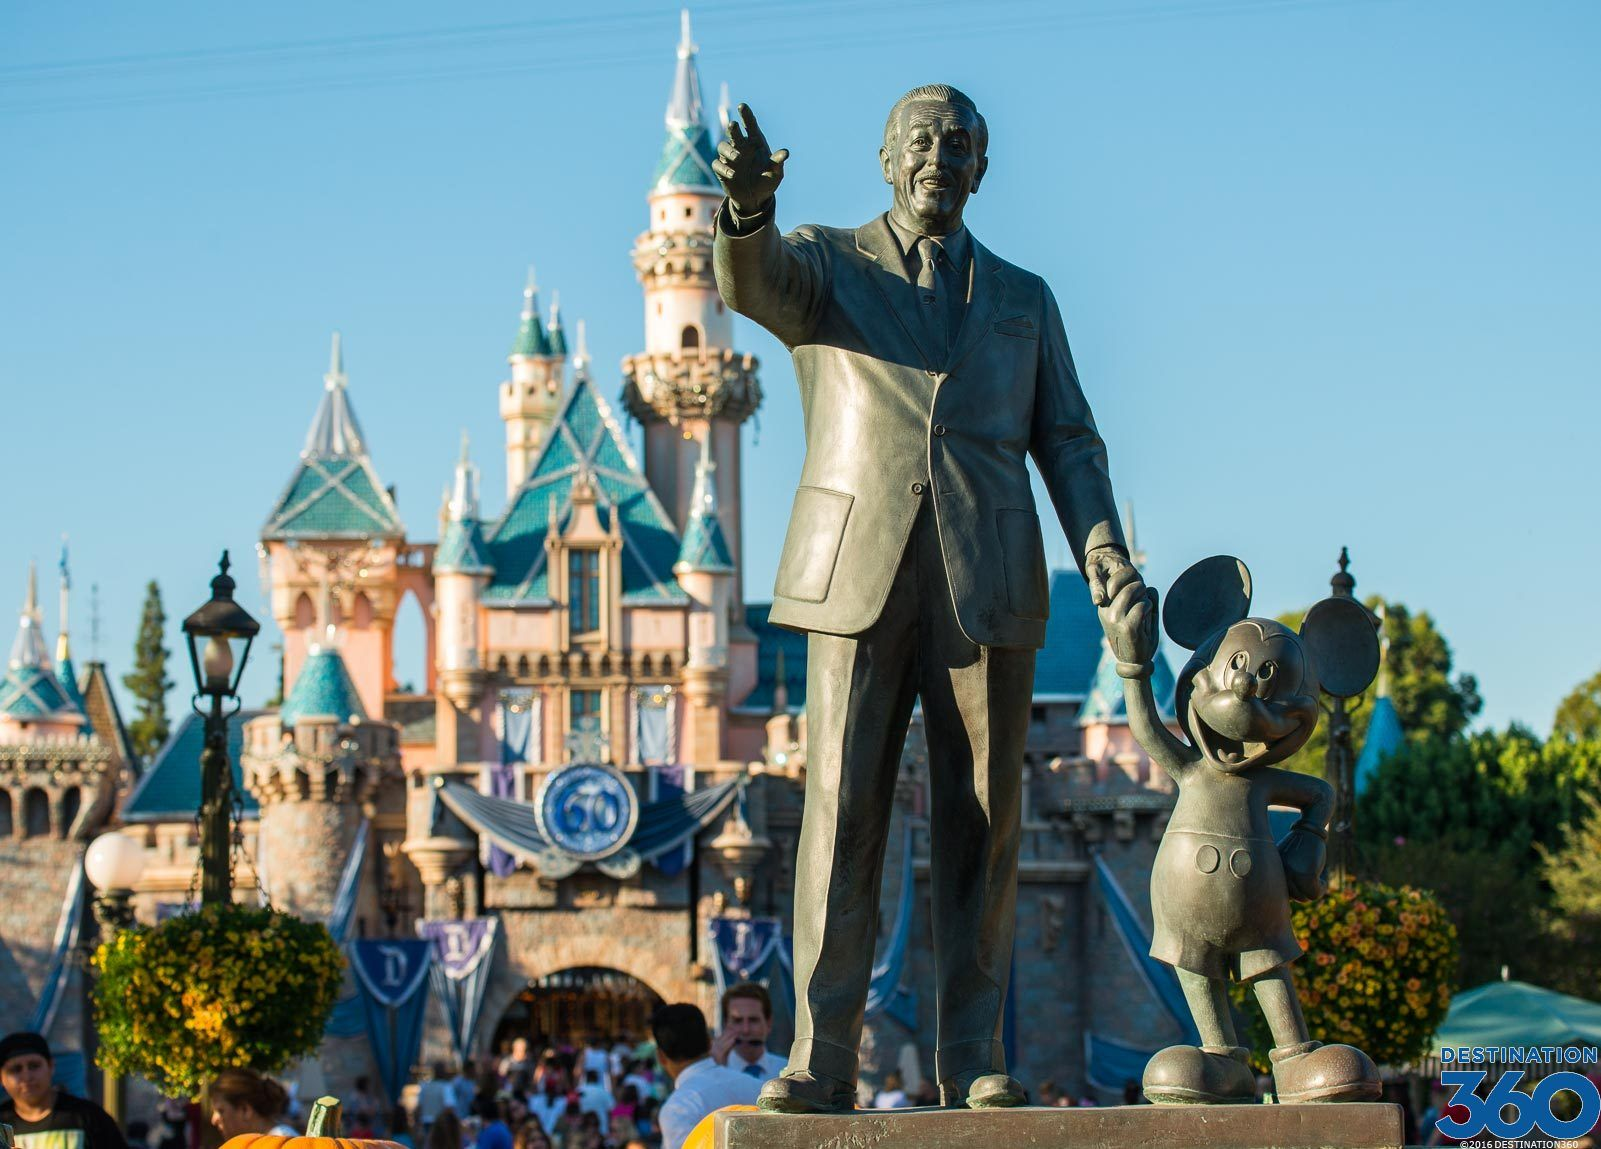 Disneyland vacations can tend toward expensive on the